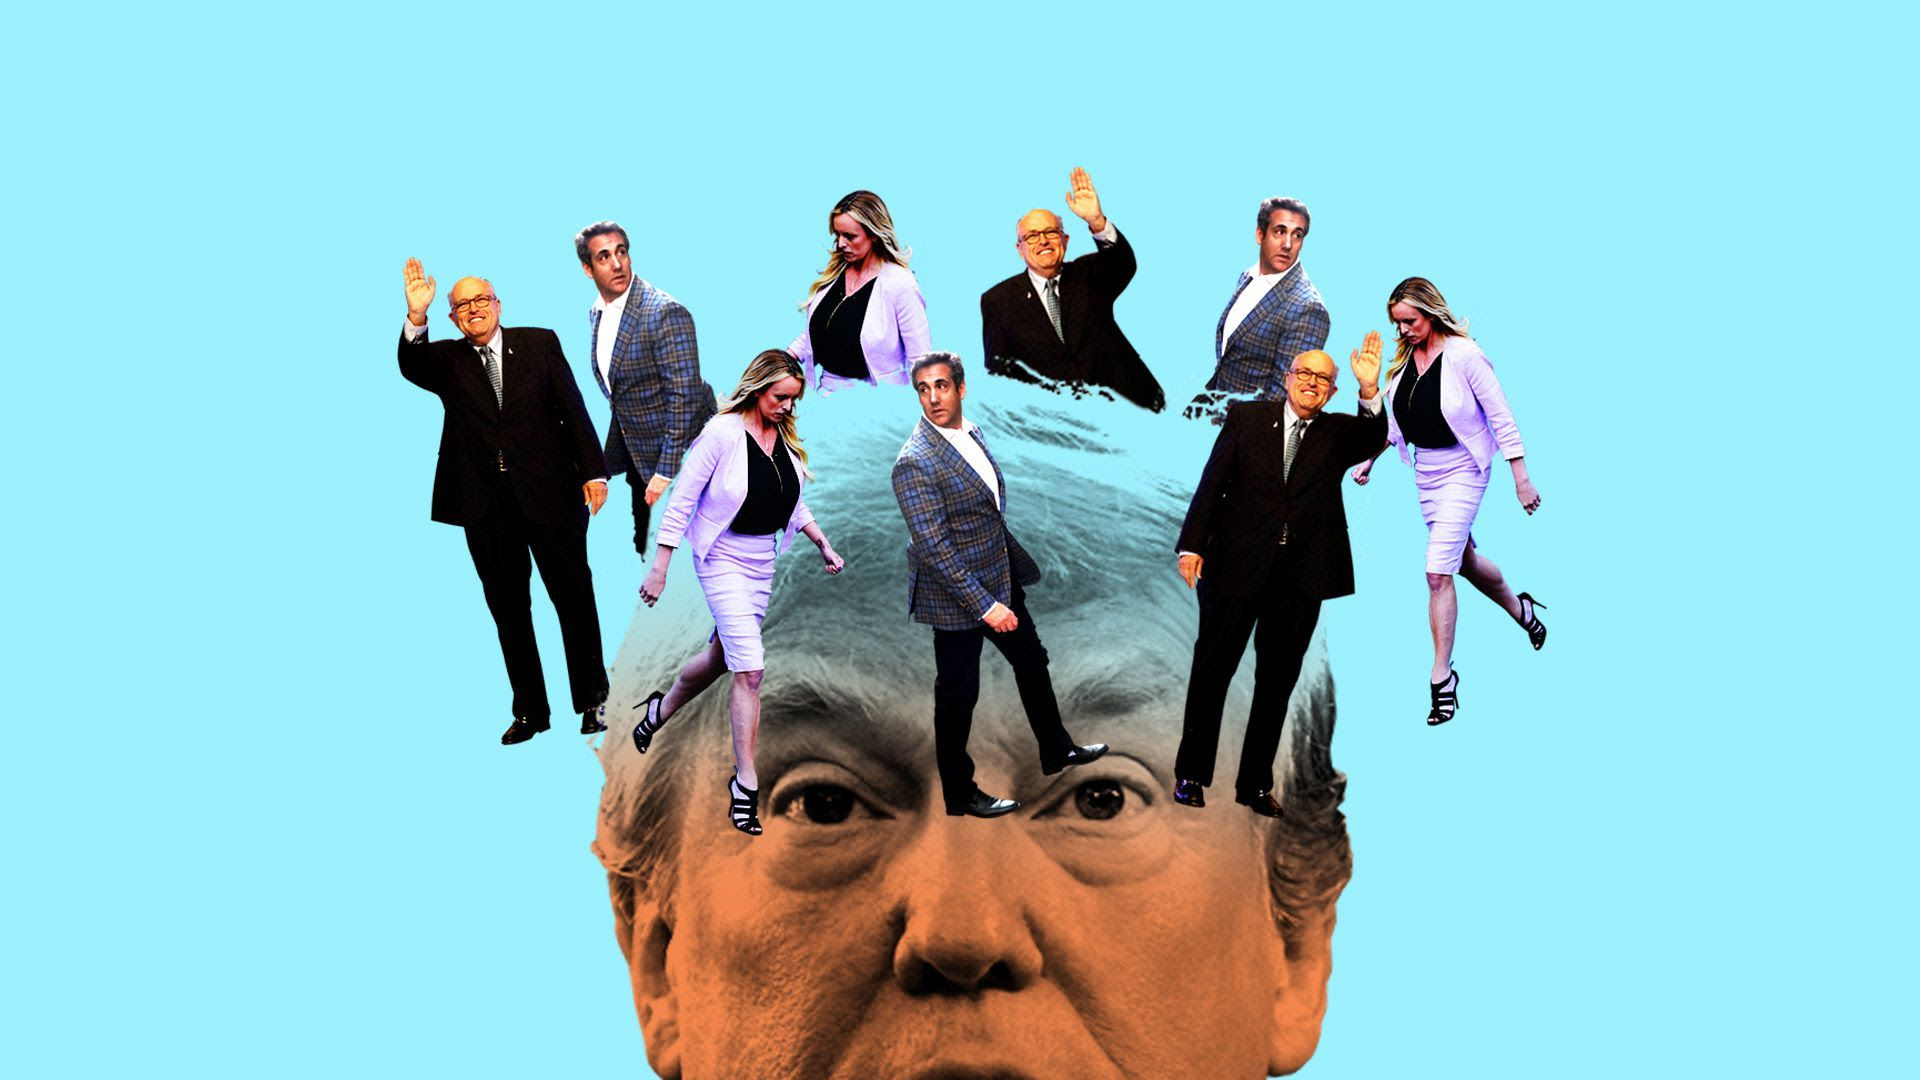 An illustration of Stormy Daniels, Michael Cohen and Rudy Giuliani circling Trump's head